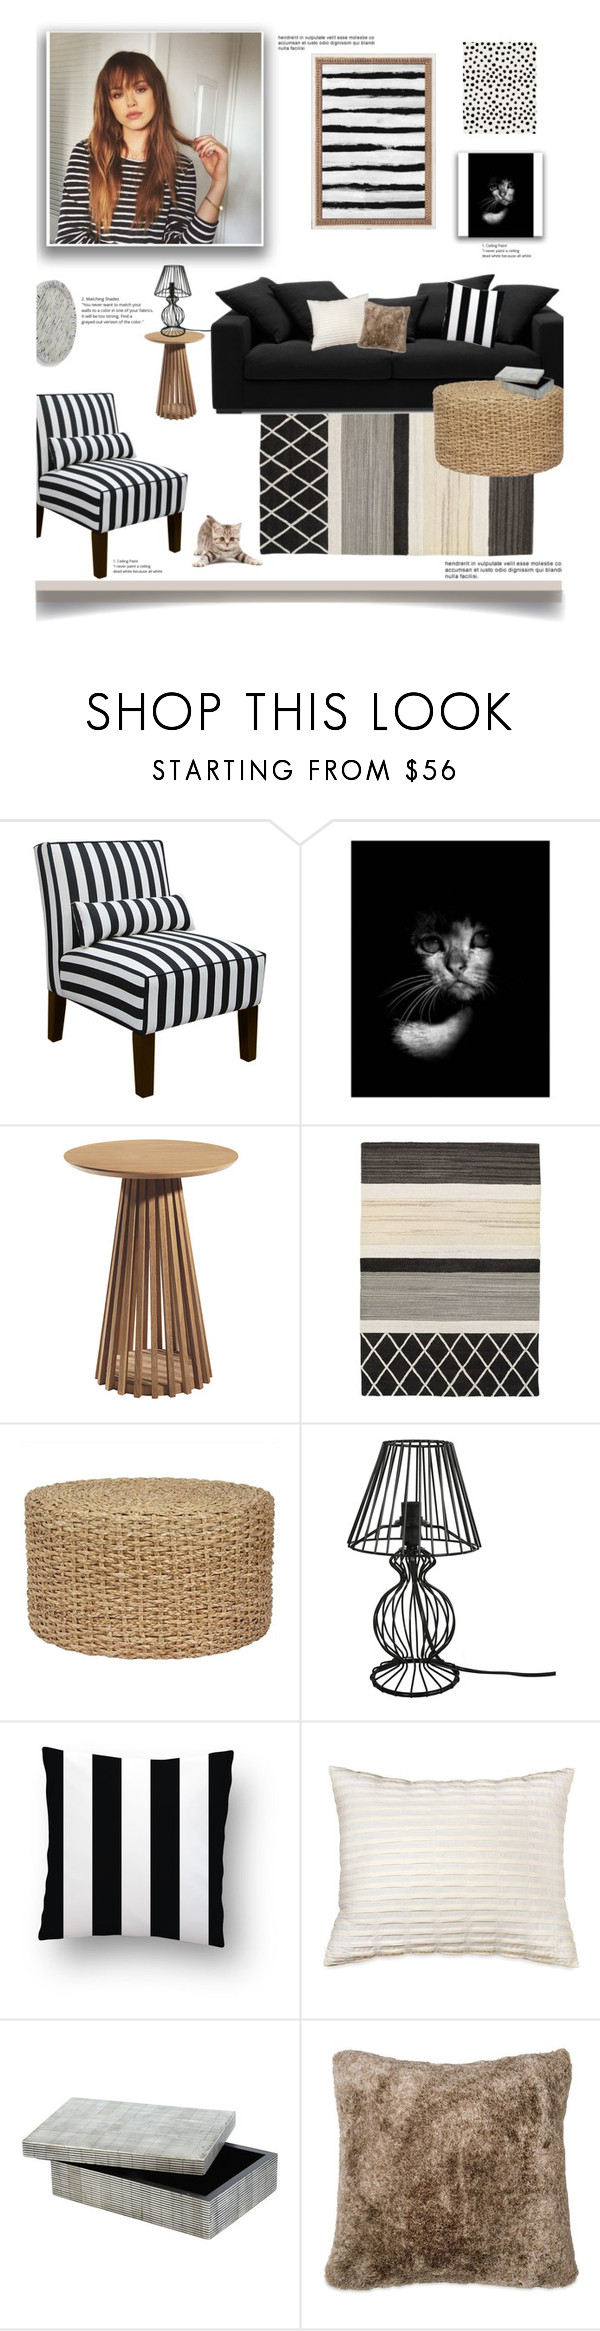 """Just Me and My Cat'"" by dianefantasy ❤ liked on Polyvore featuring interior, interiors, interior design, home, home decor, interior decorating, Skyline, NOVICA, BoConcept and DKNY"